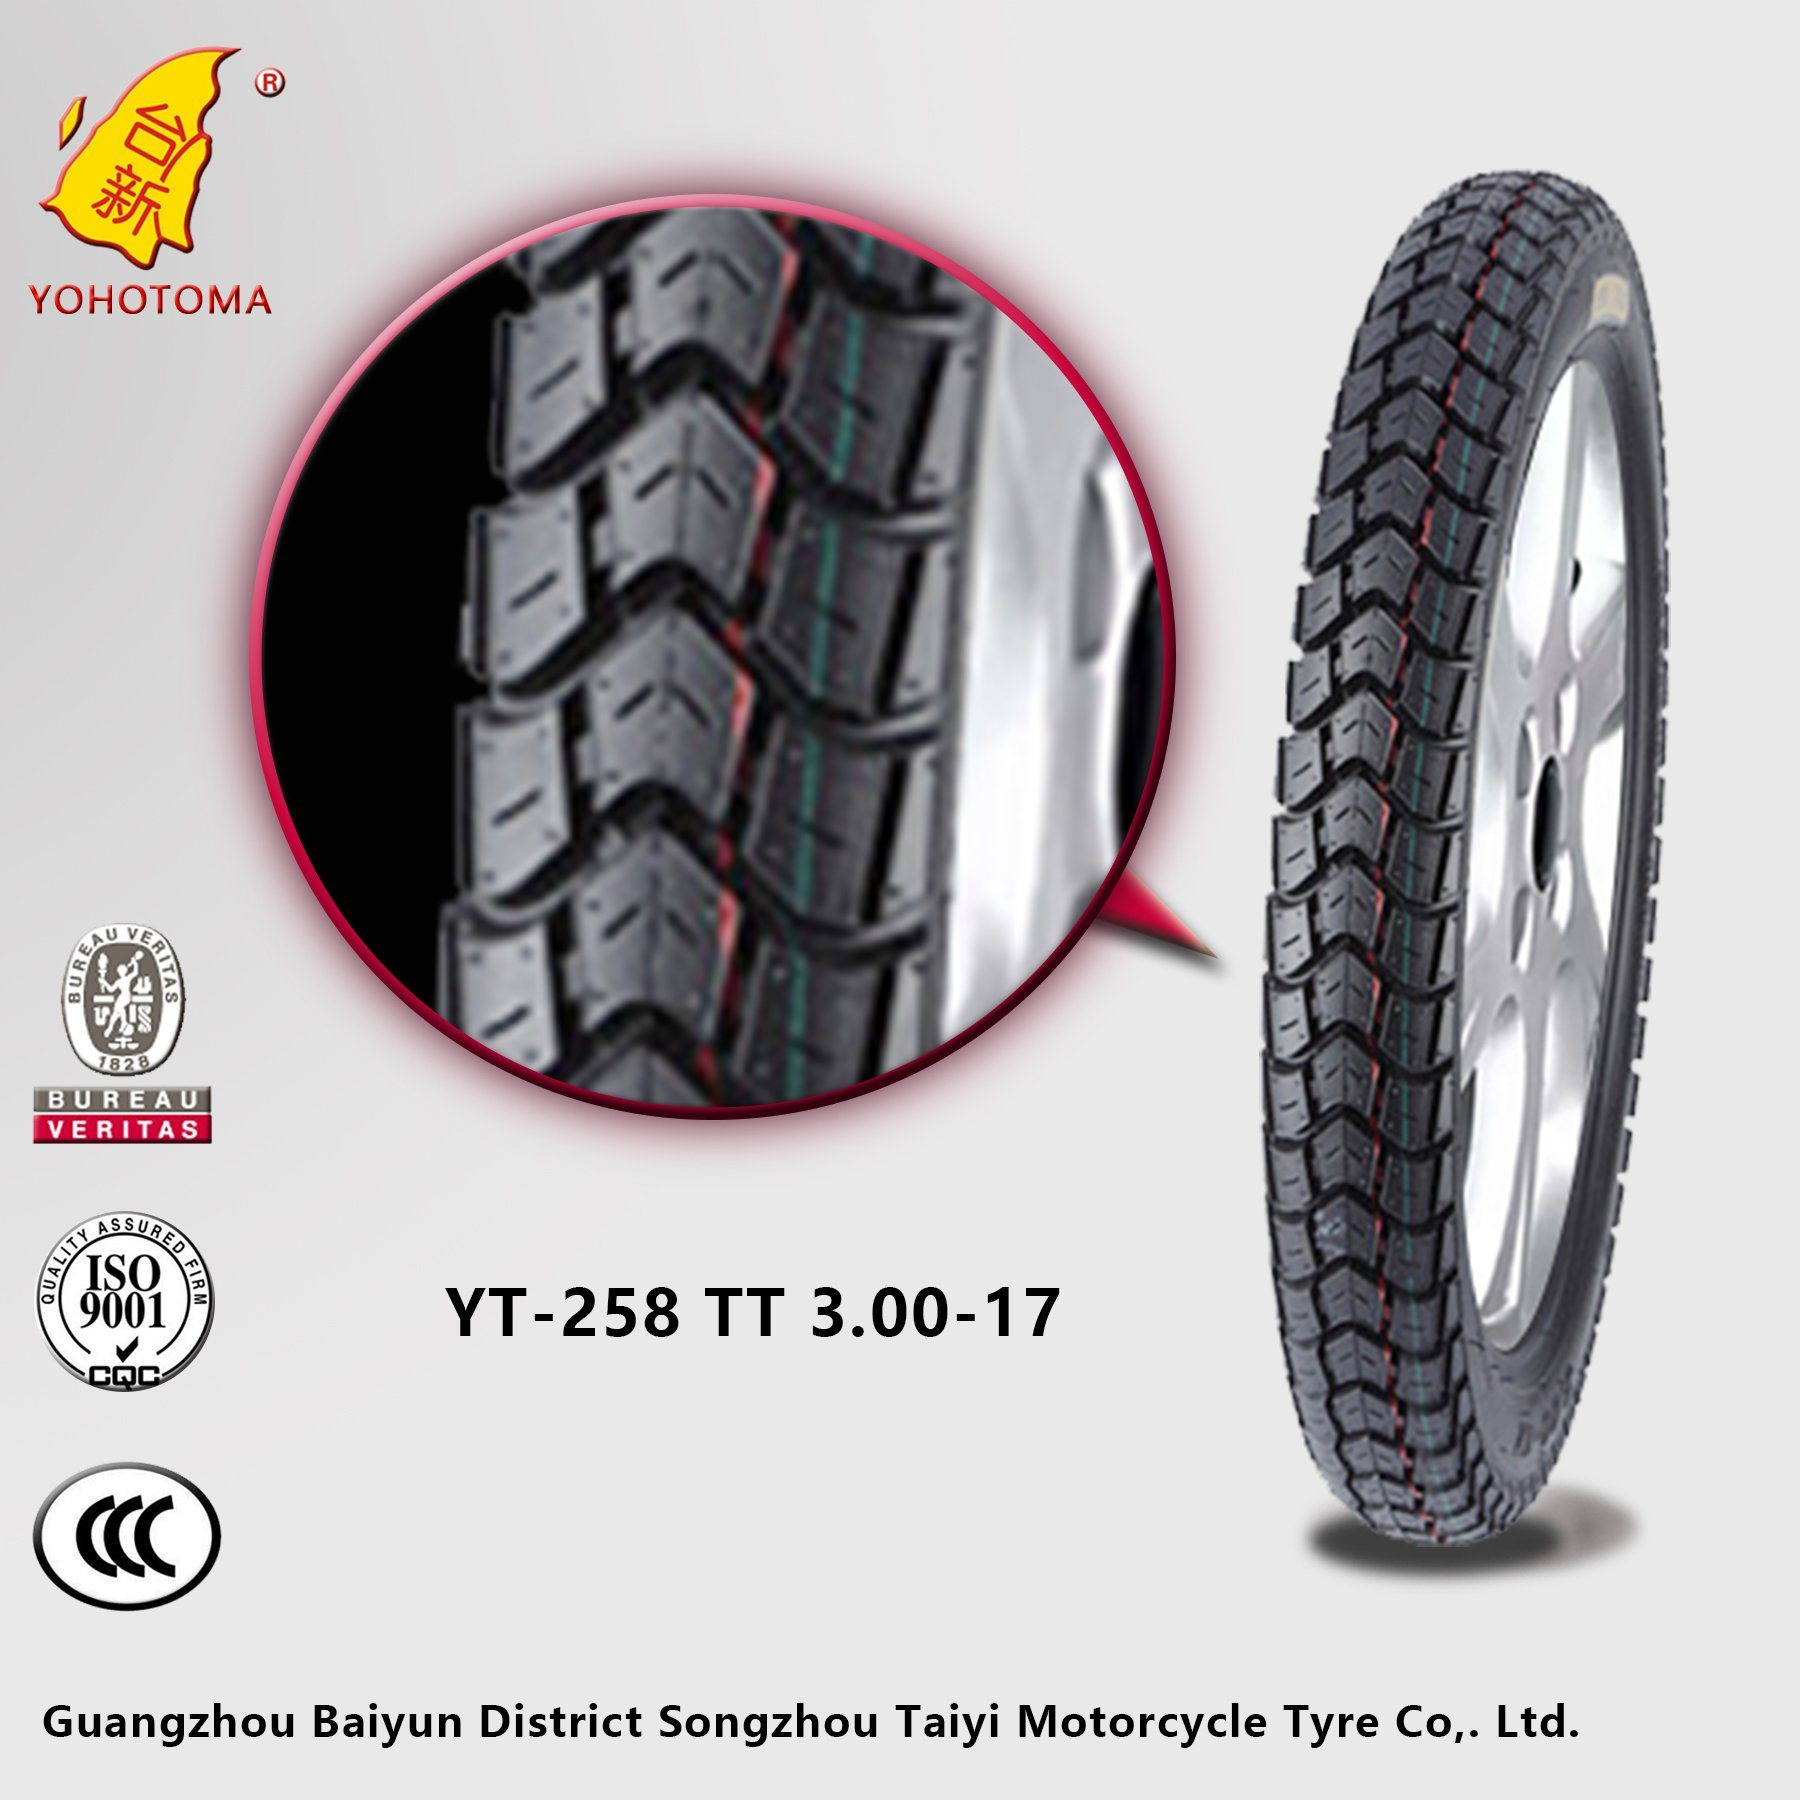 China Most Popular Low Price Good Quality Motorcycle Tyre YT-258 TT3.00-17